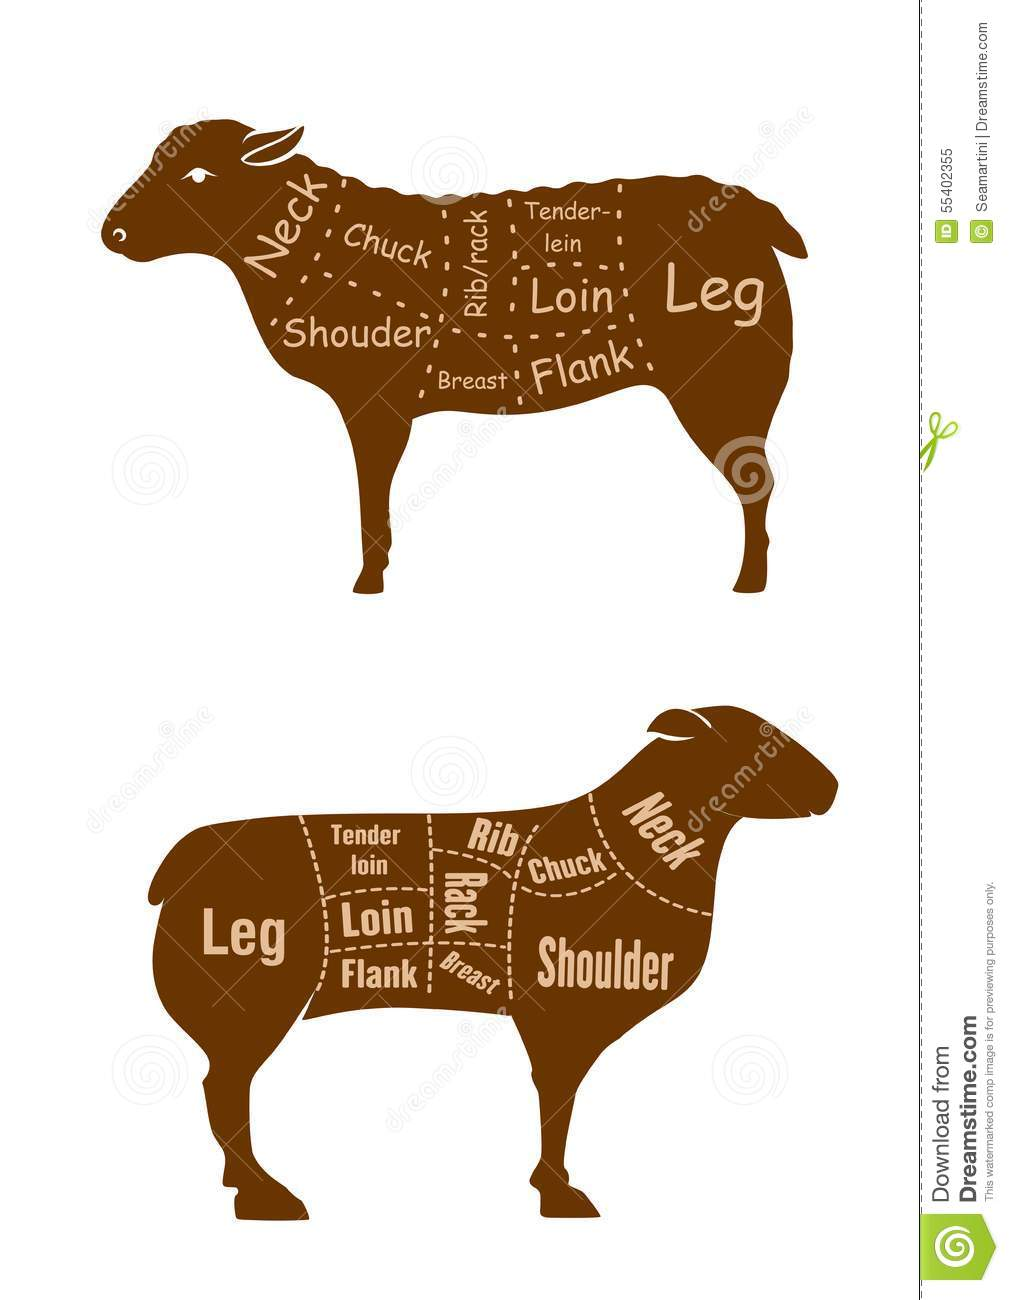 lamb or mutton butcher cuts detailed diagram stock vector. Black Bedroom Furniture Sets. Home Design Ideas